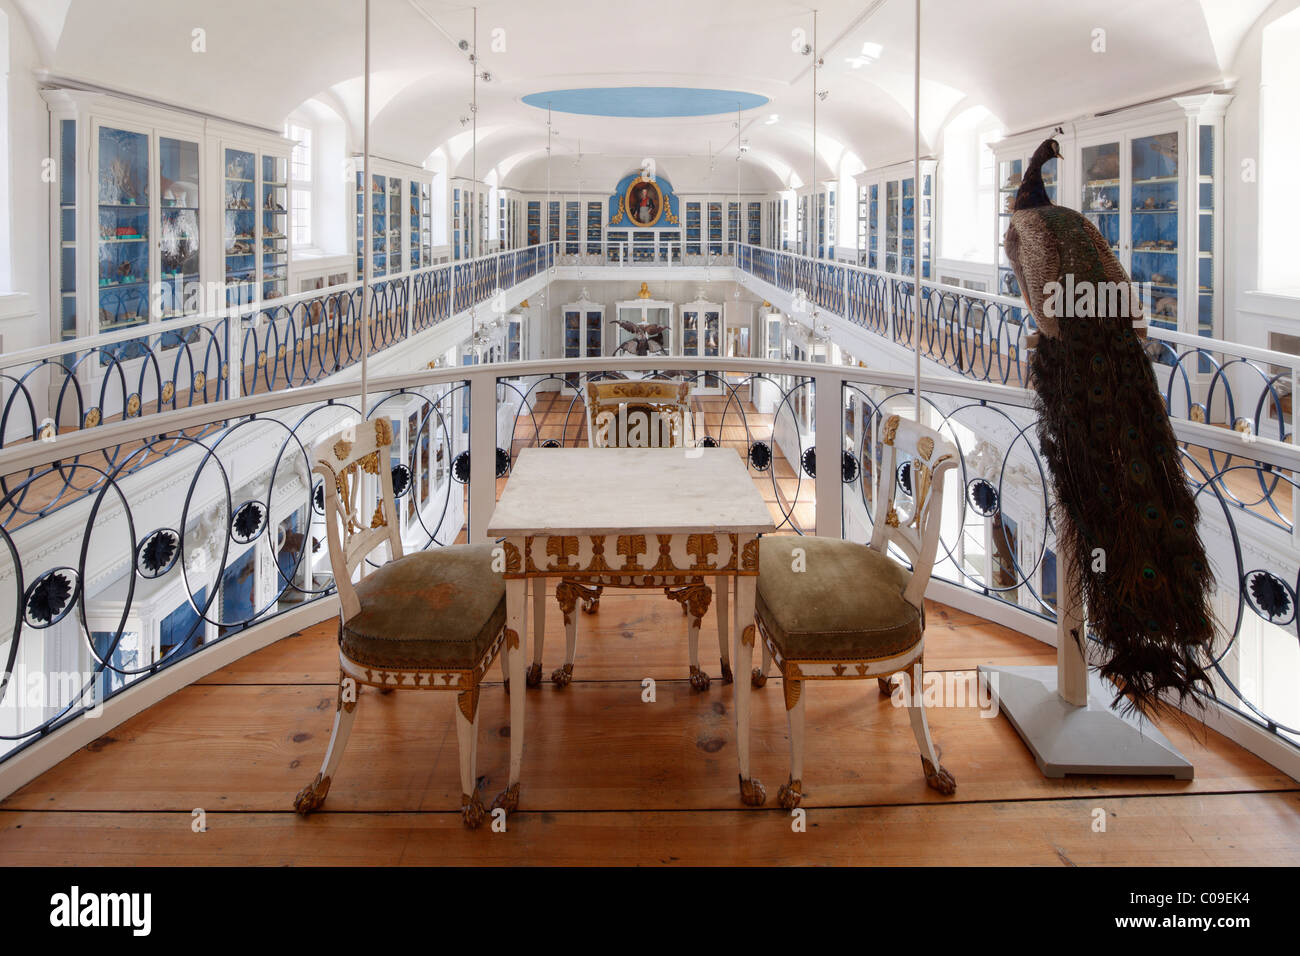 Historical exhibition hall in the Museum of Natural History, Bamberg, Upper Franconia, Franconia, Bavaria, Germany, - Stock Image